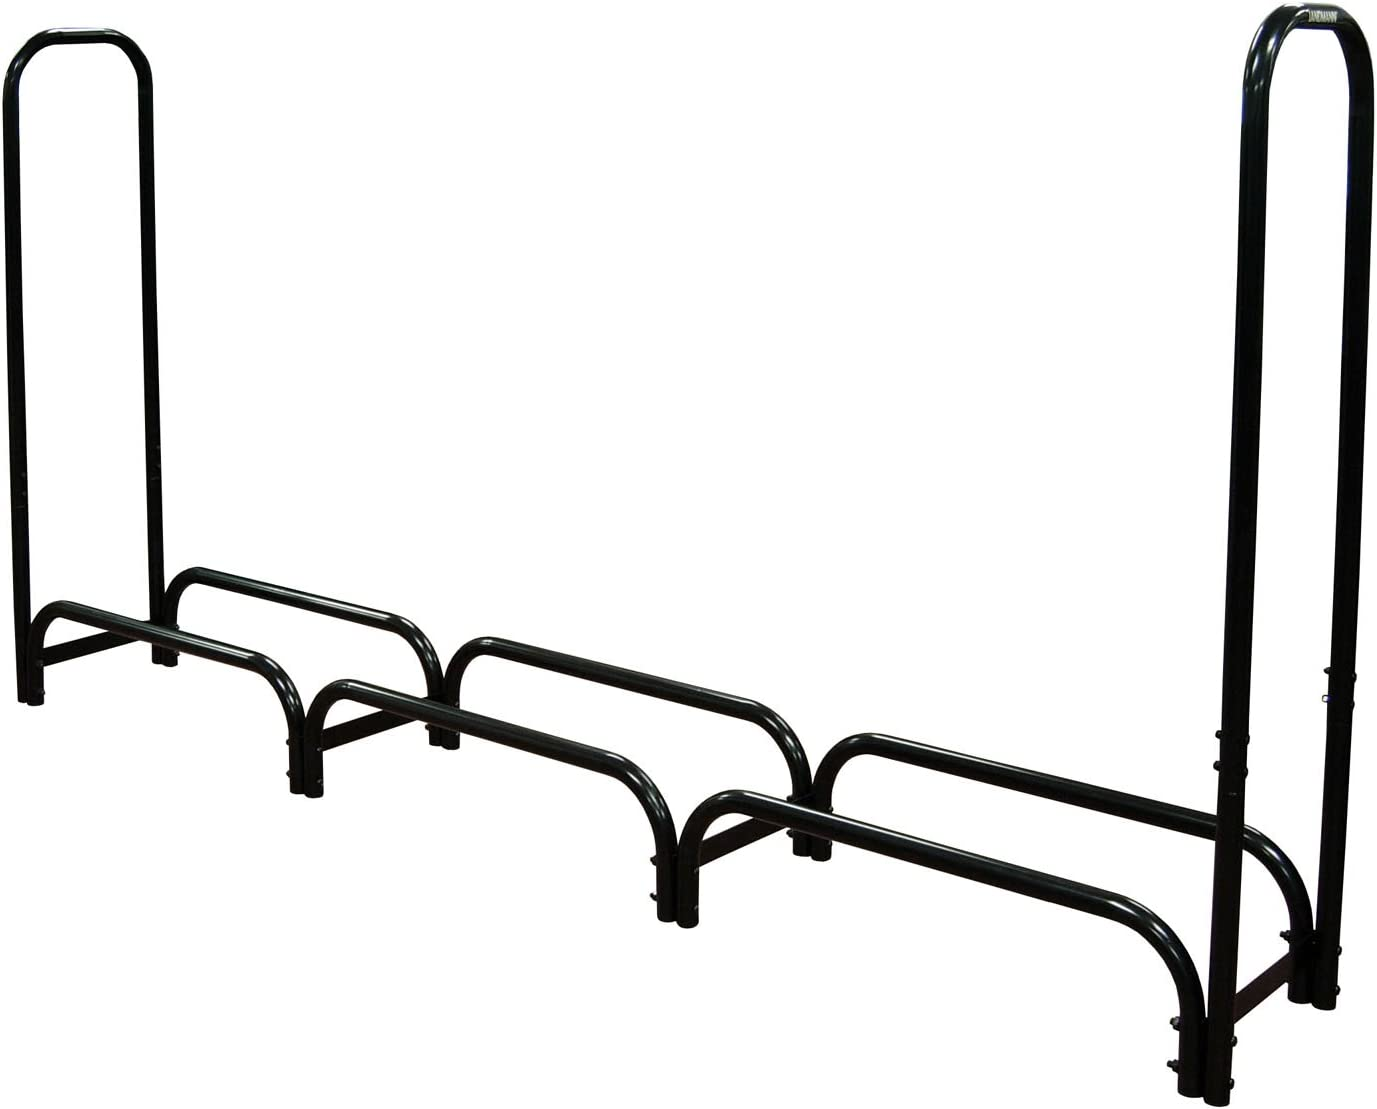 Landmann 82443 Firewood Rack with Cover - 8 Feet